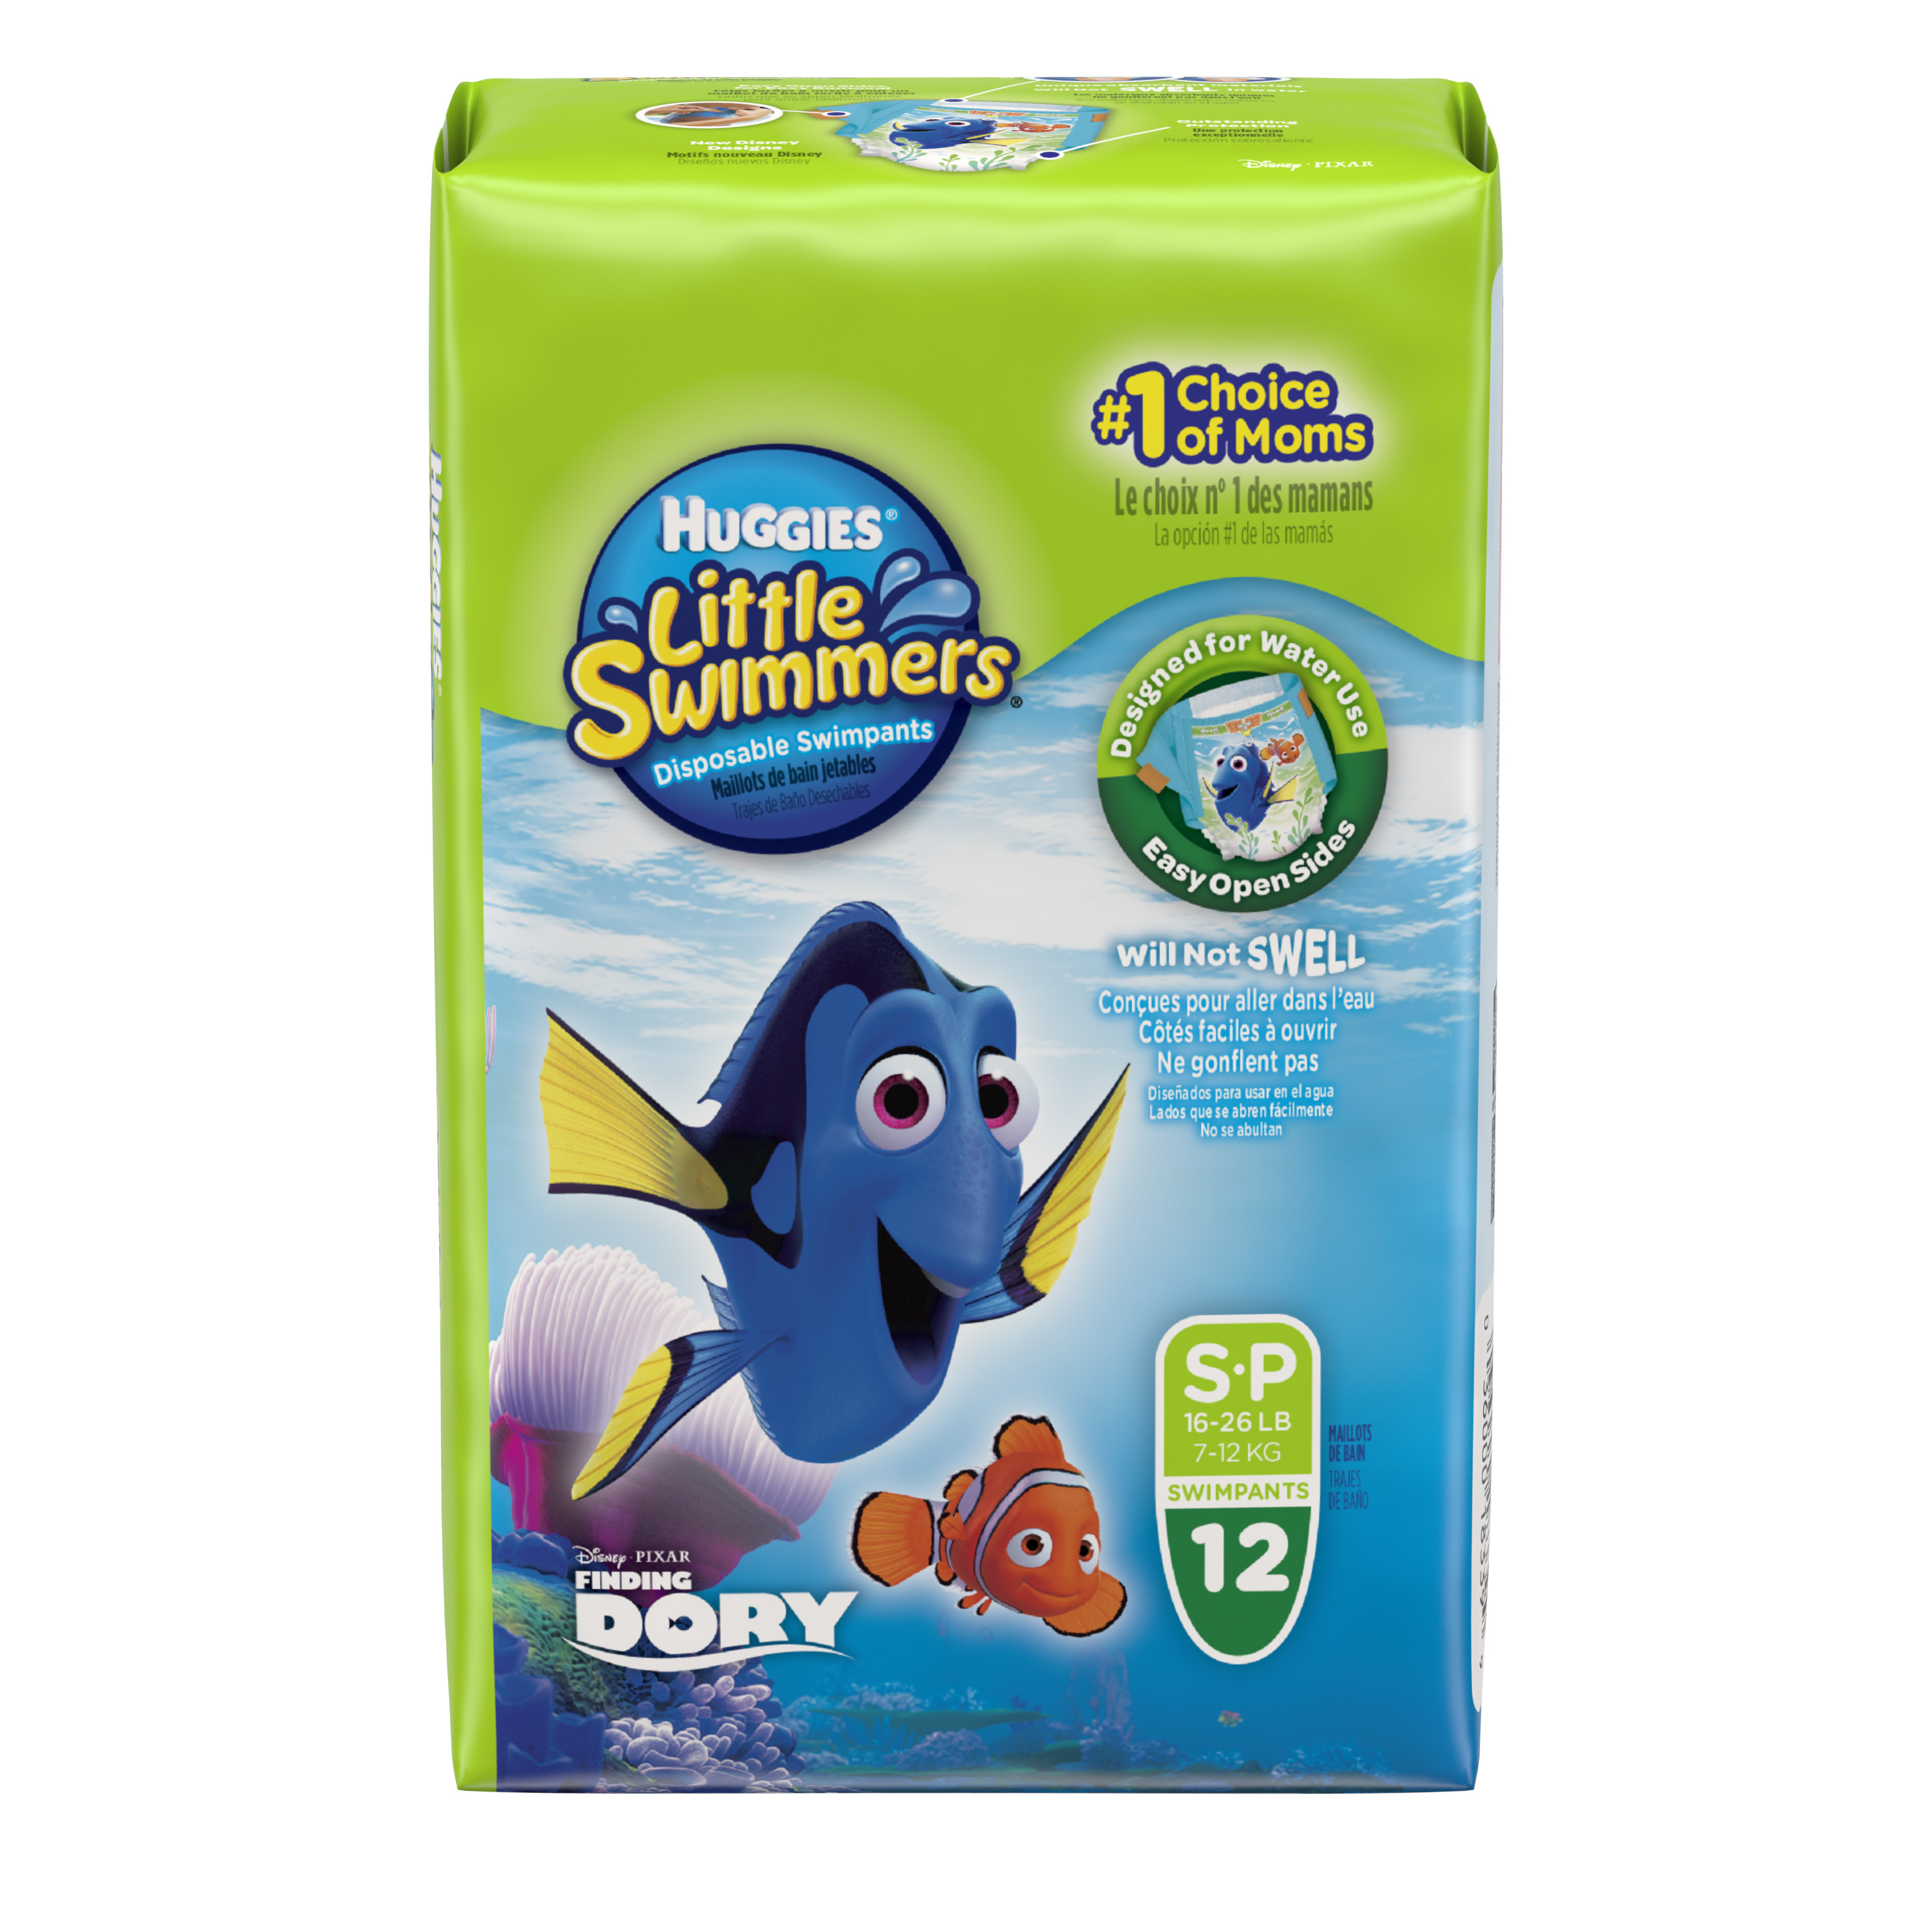 HUGGIES Little Swimmers Disney Pixar Finding Dory Swimpants (Choose Size and Count)